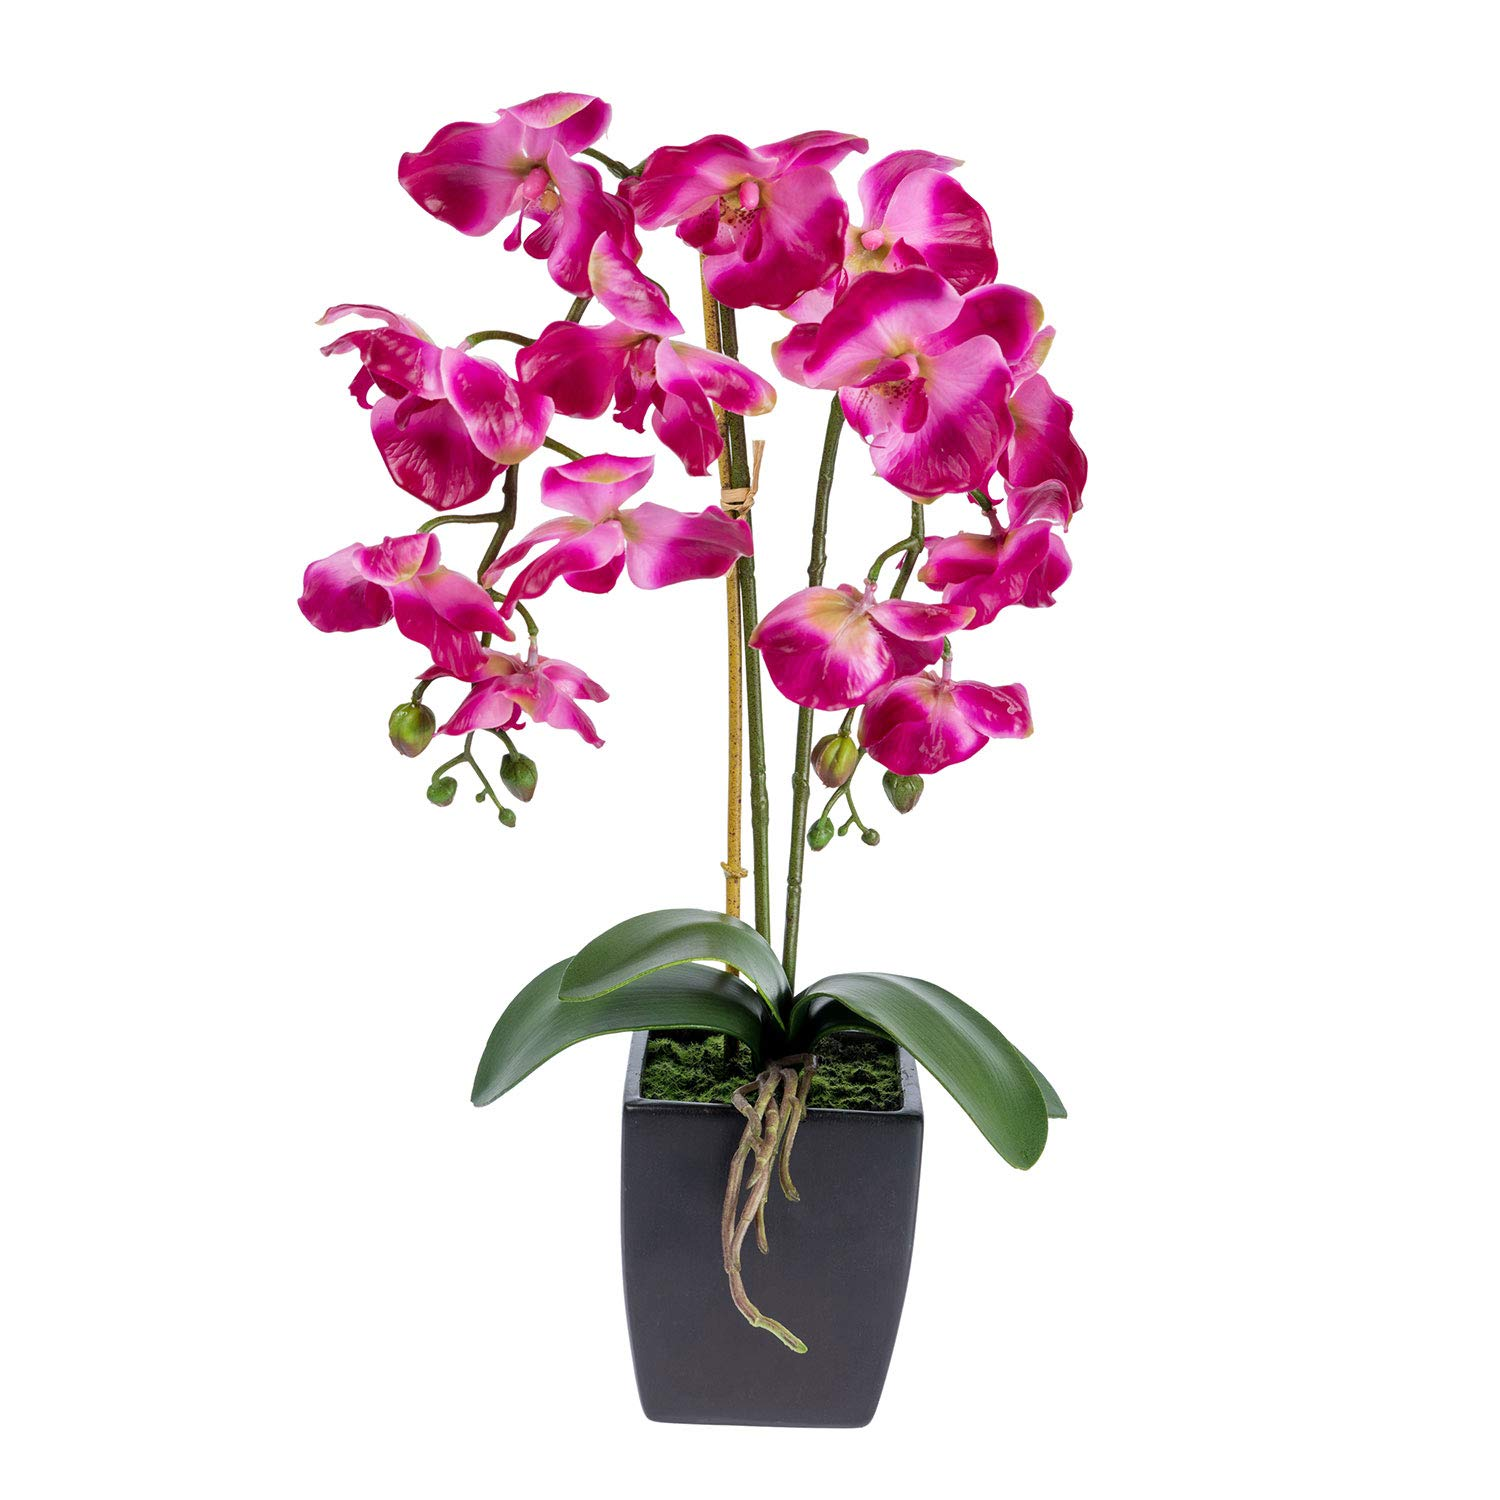 Homescapes Dark Pink Artificial Orchid with Lifelike Silk Flowers and Realistic Green Leaves Cerise Oriental Phalaenopsis Orchid Flower in Mat Black Square Planter Pot 60cm Tall for Indoor Decoration